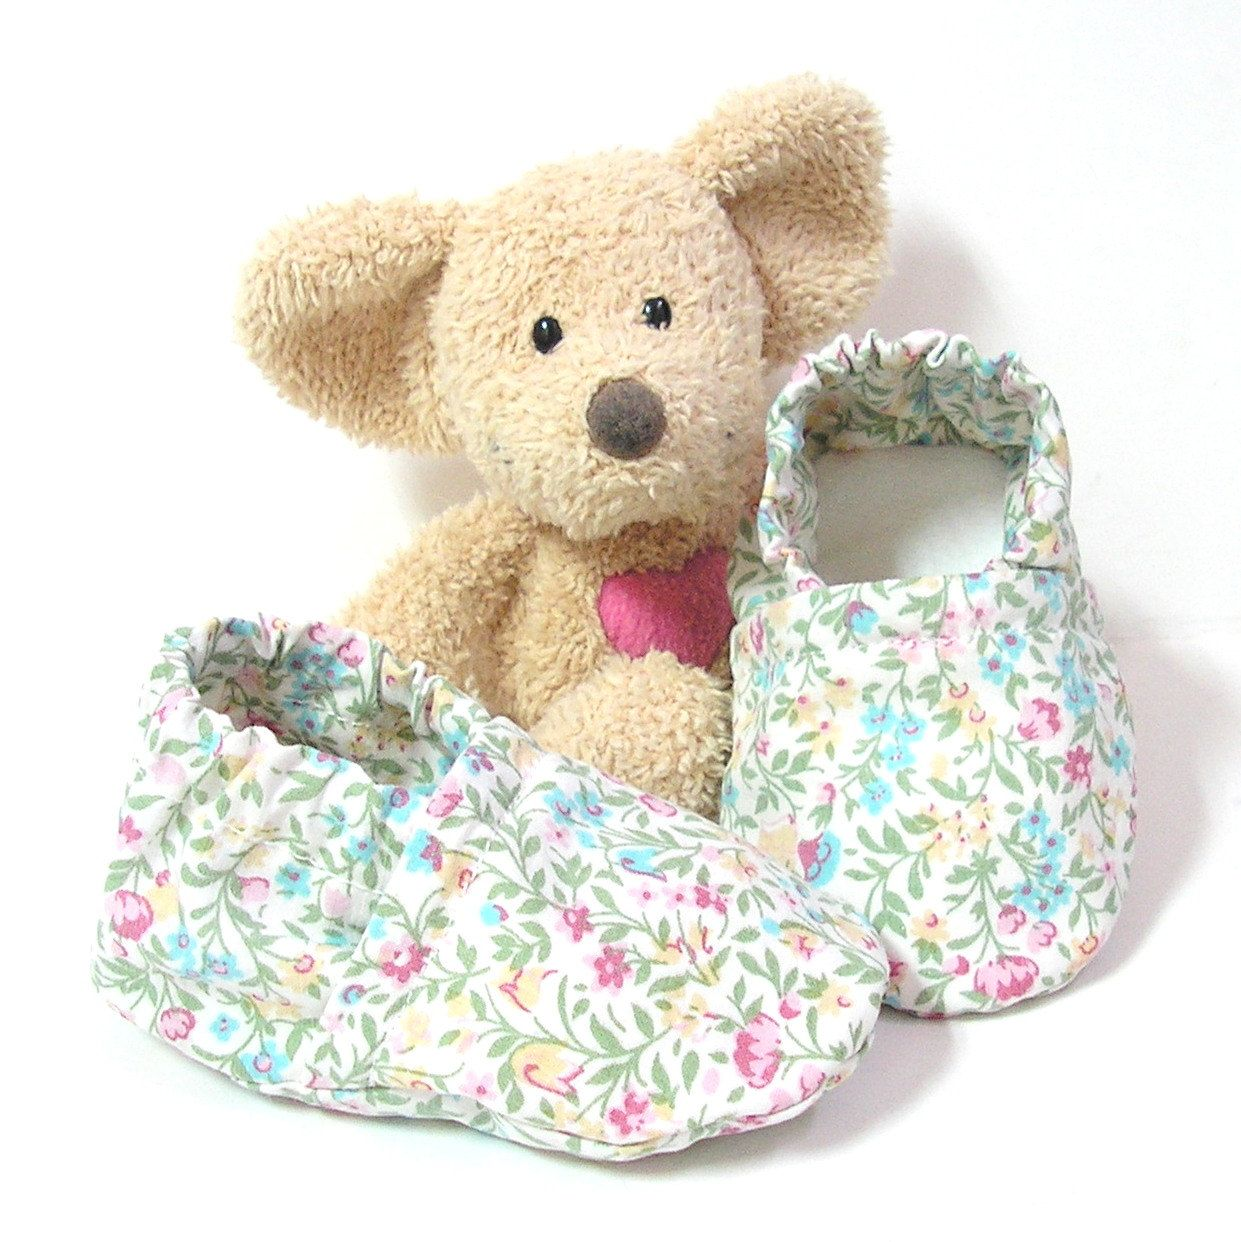 Handmade baby slippers made of cotton fabric with flowers 3 to 6 months Tricotmuse - pinned by pin4etsy.com